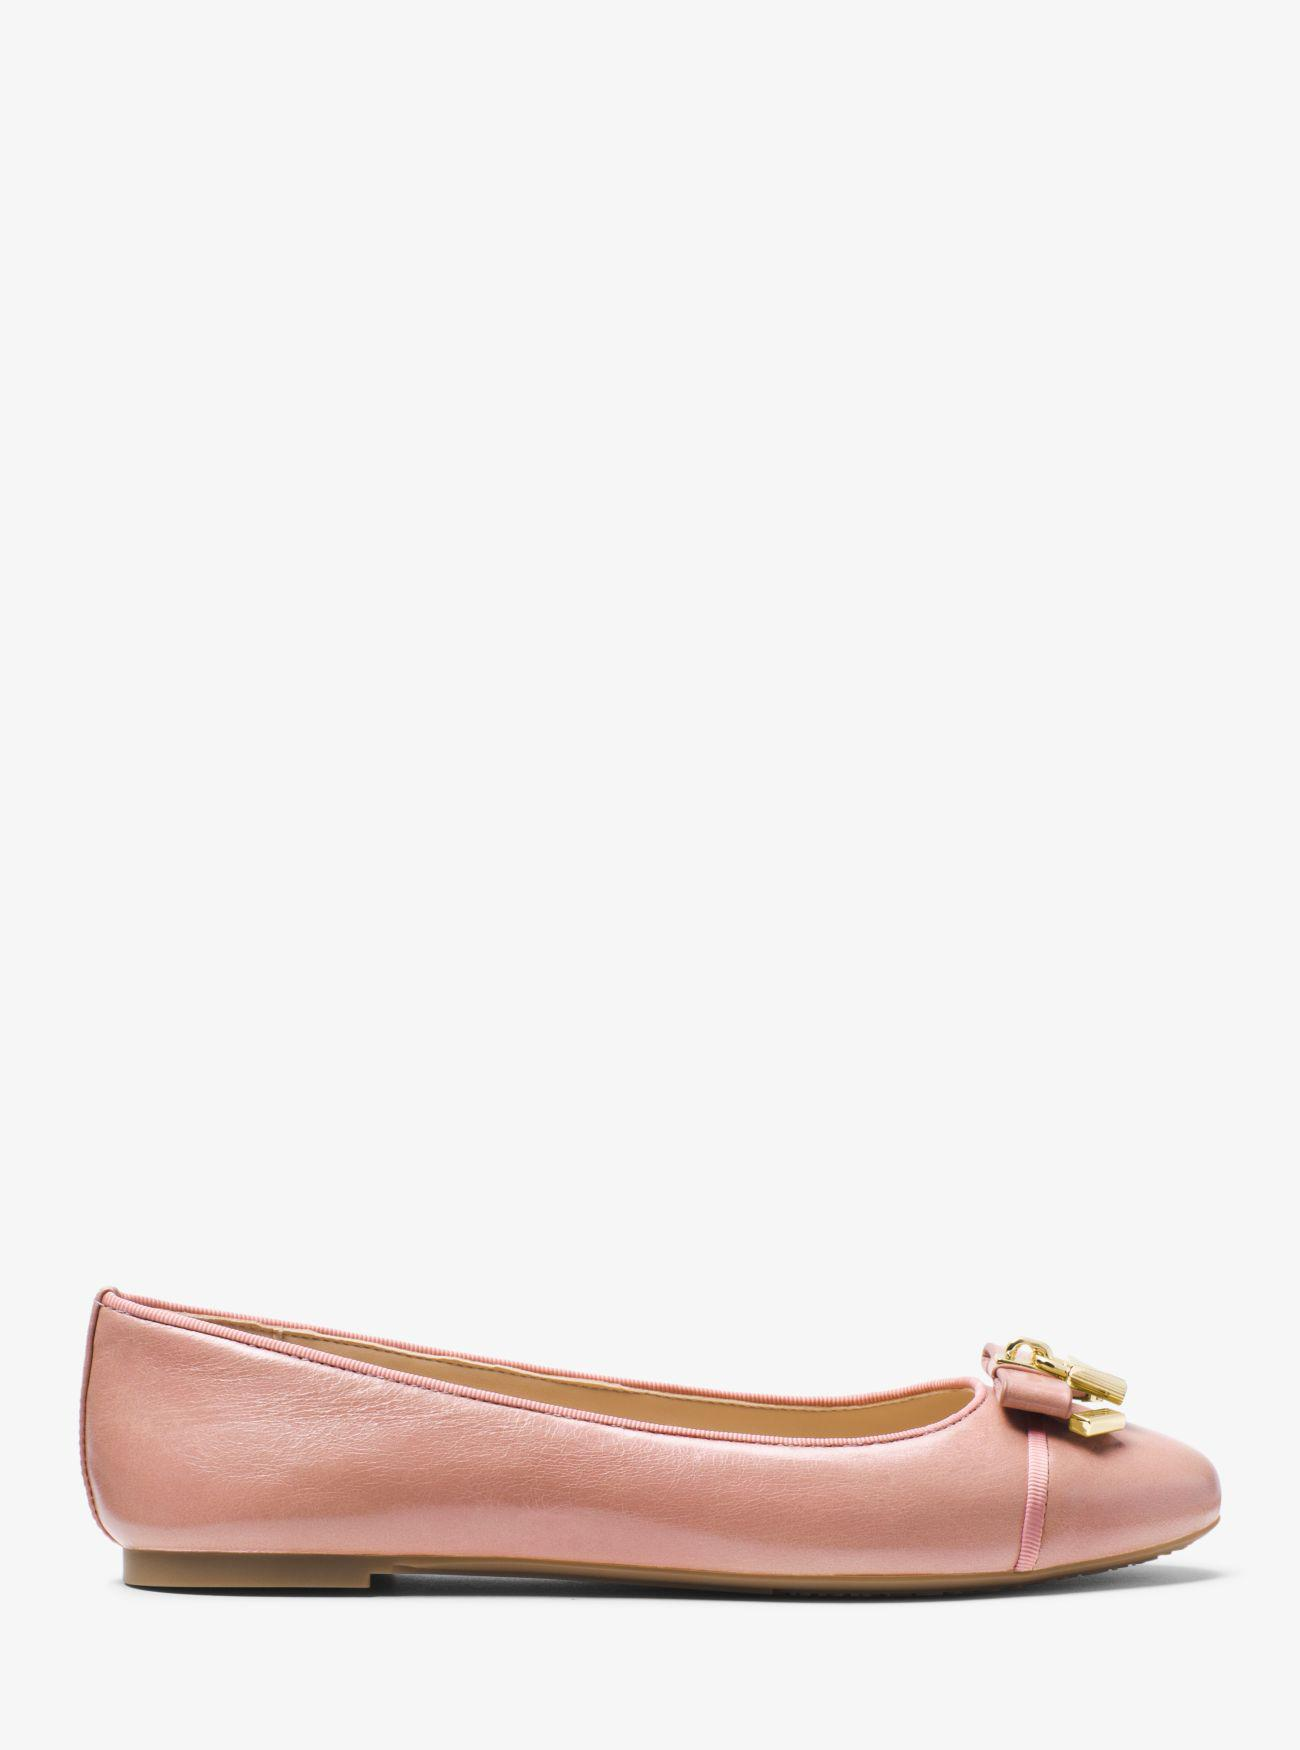 5f920c67339f Lyst - Michael Kors Alice Leather Ballet Flat in Pink